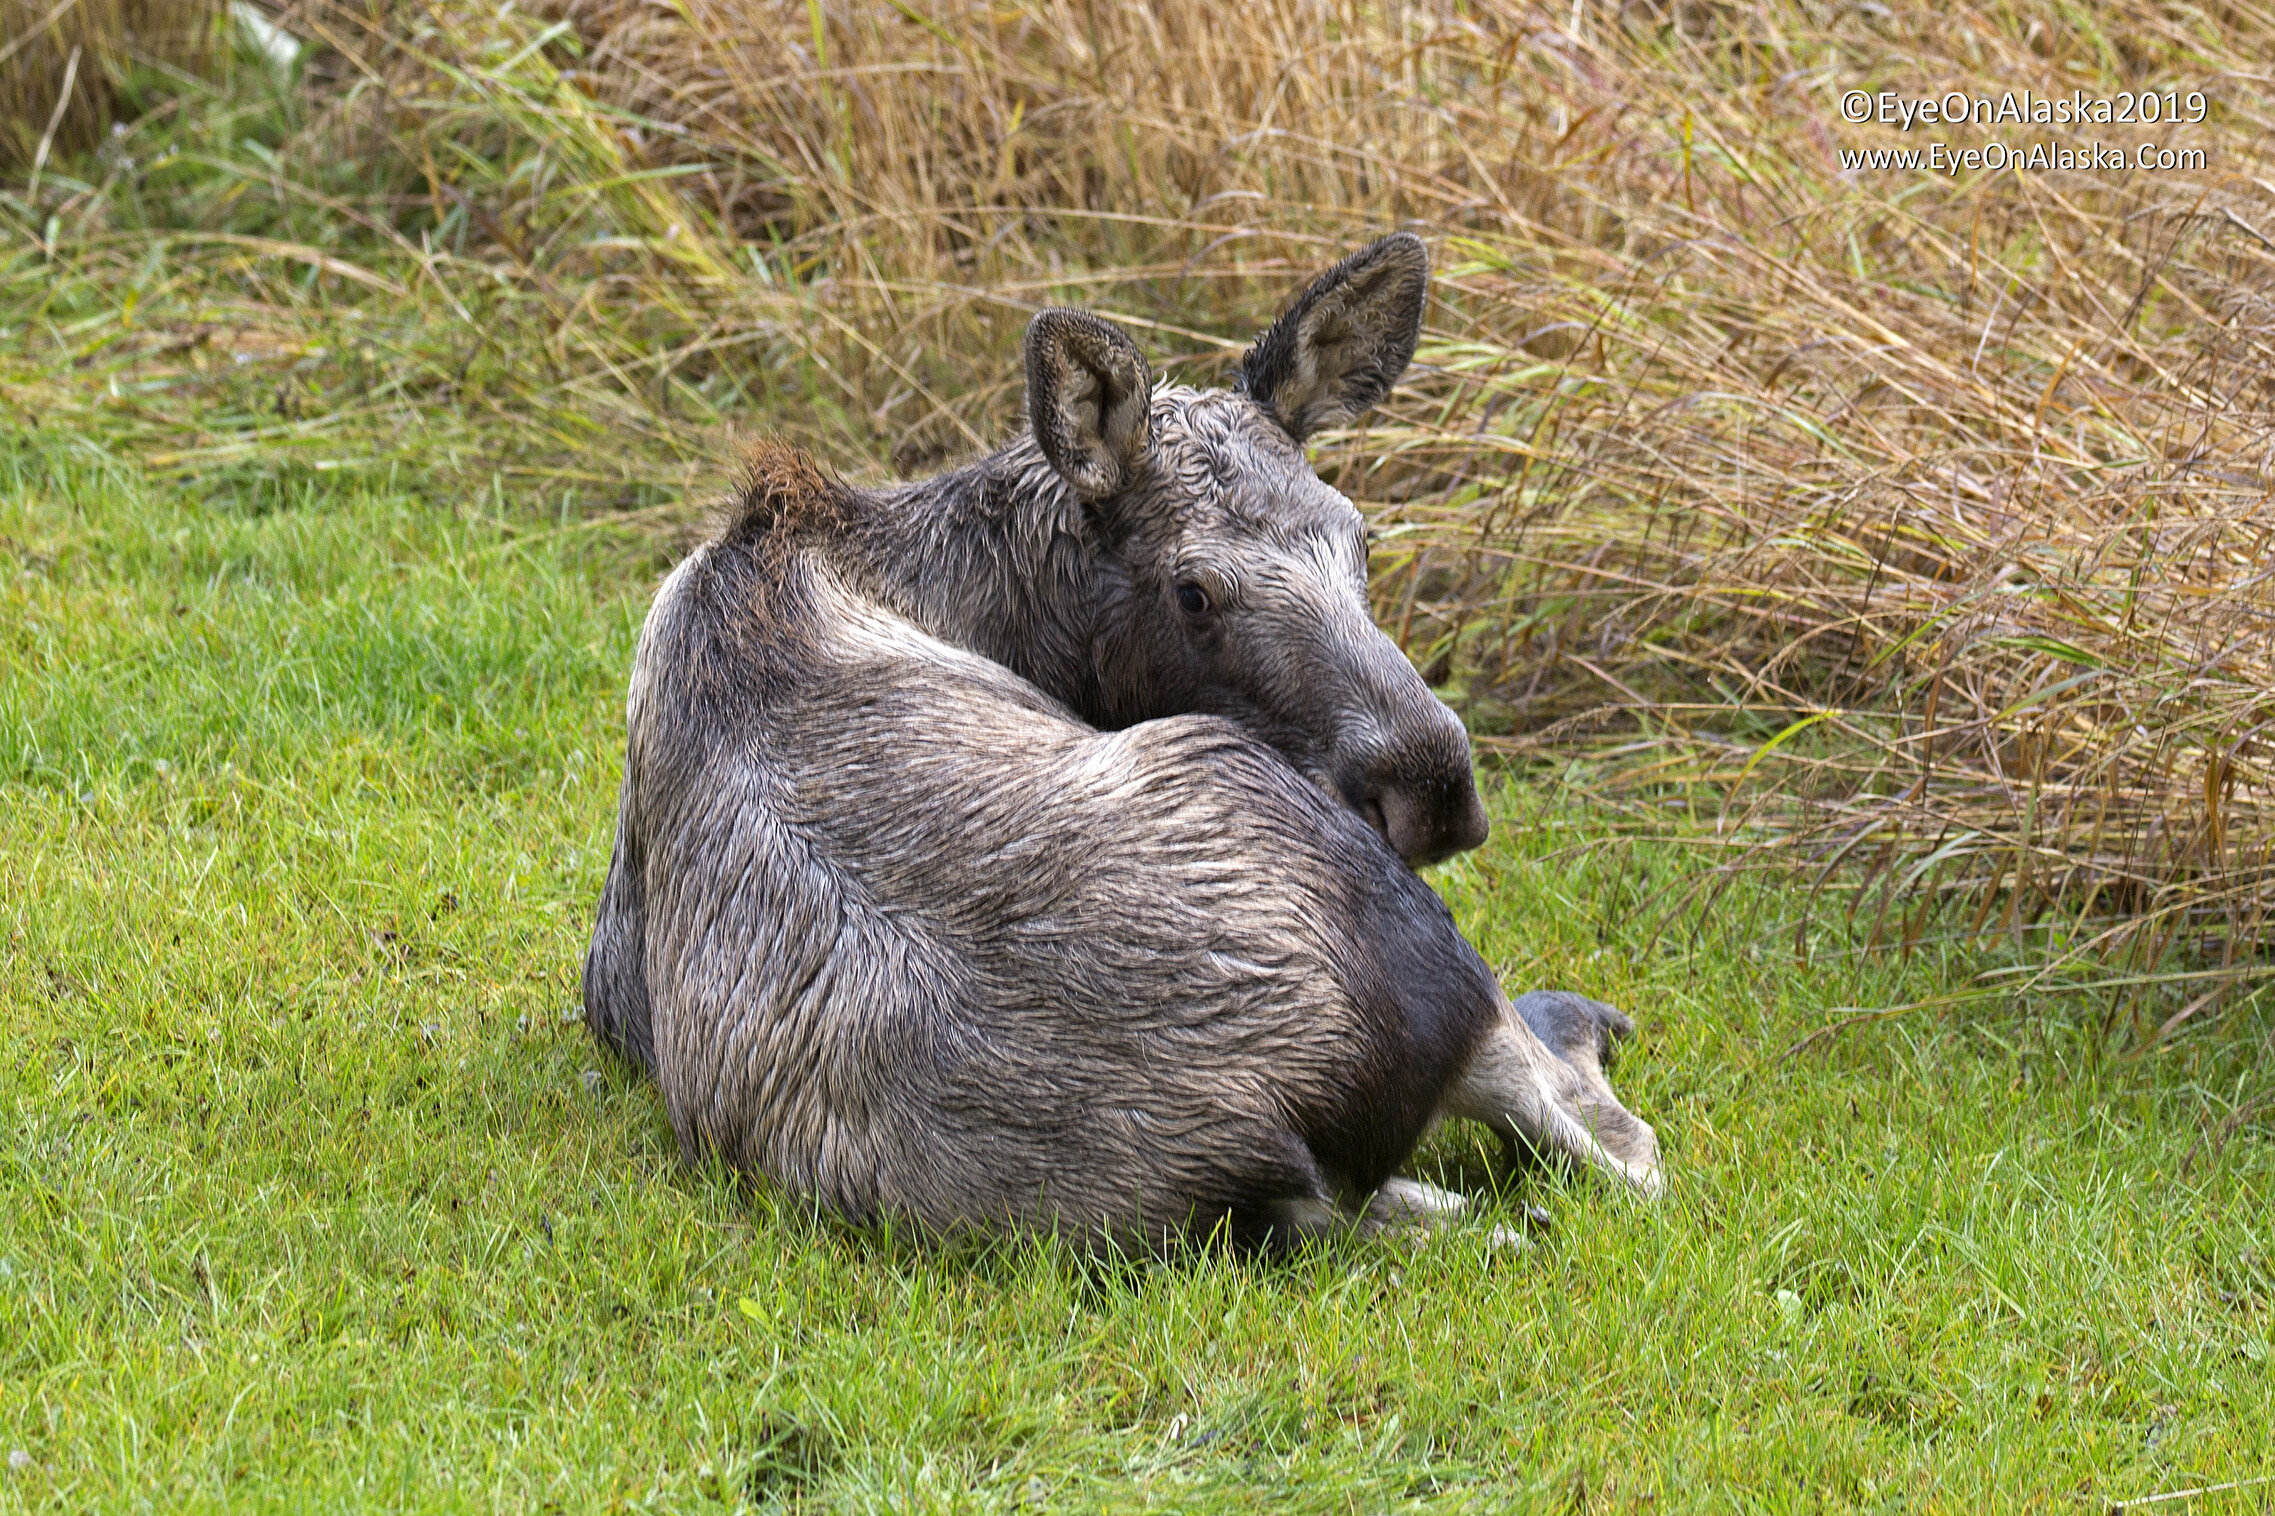 Meanwhile, Baby Moose is in the backyard watching all this play out.